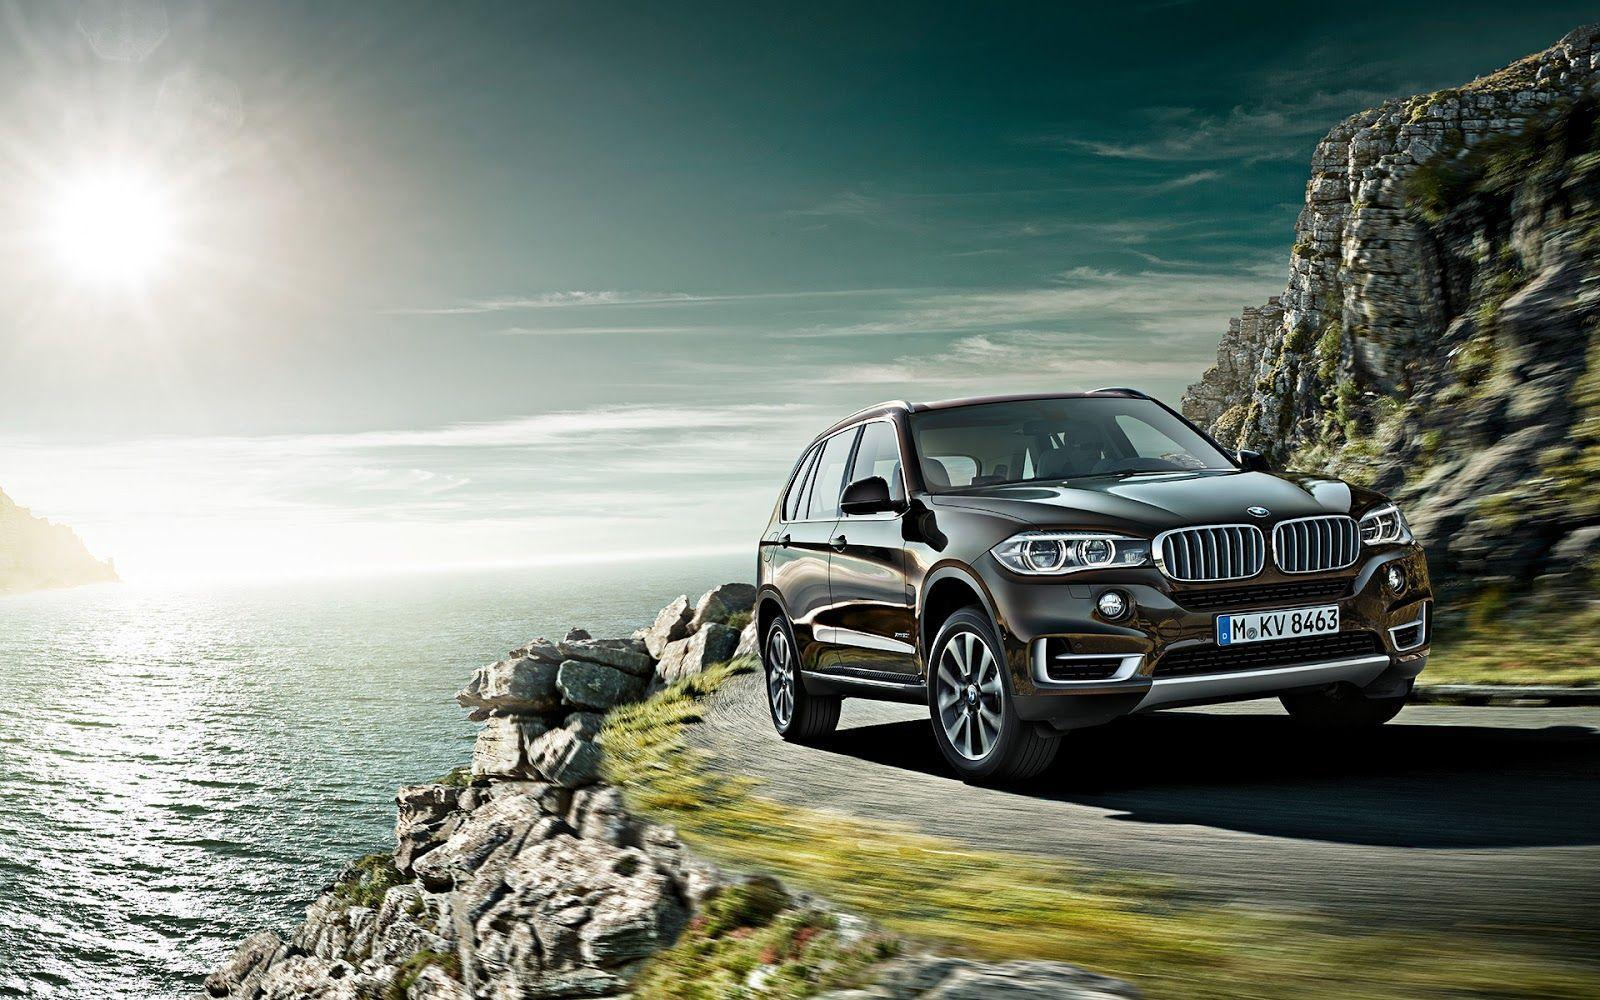 BMW X5 Wallpapers - Wallpaper Cave